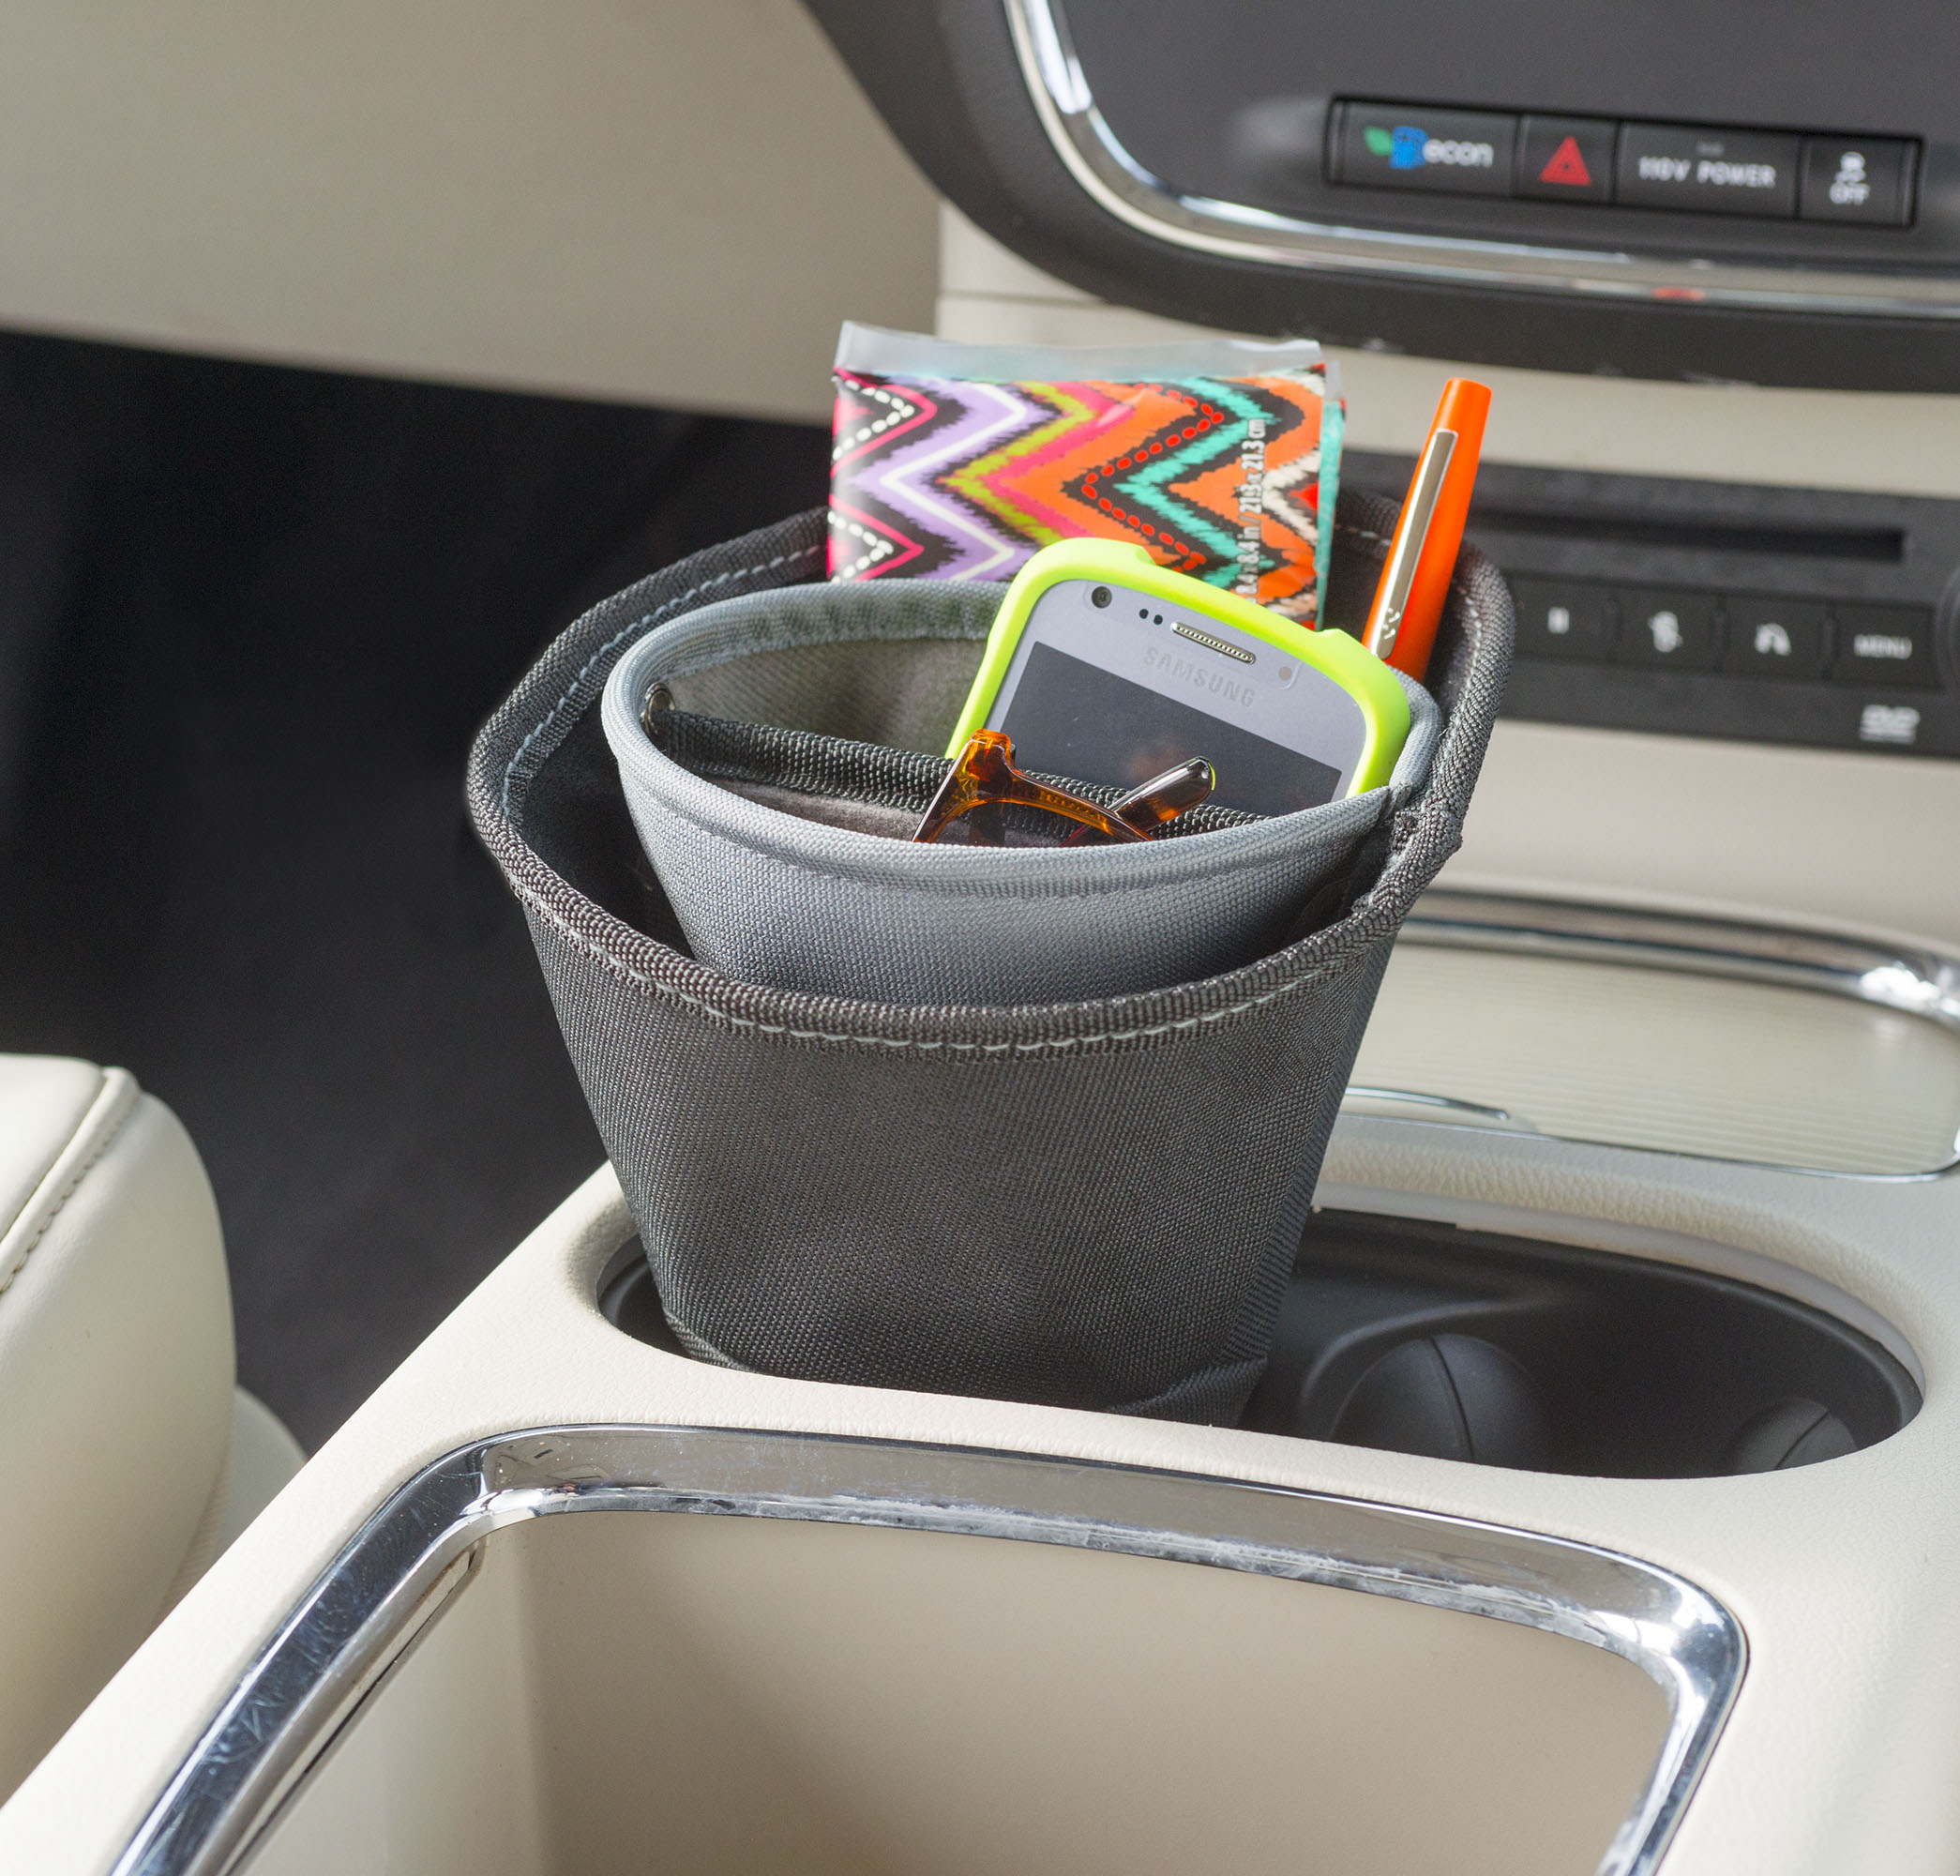 High Road Ultra DriverCup Car Phone Holder and Charging Station